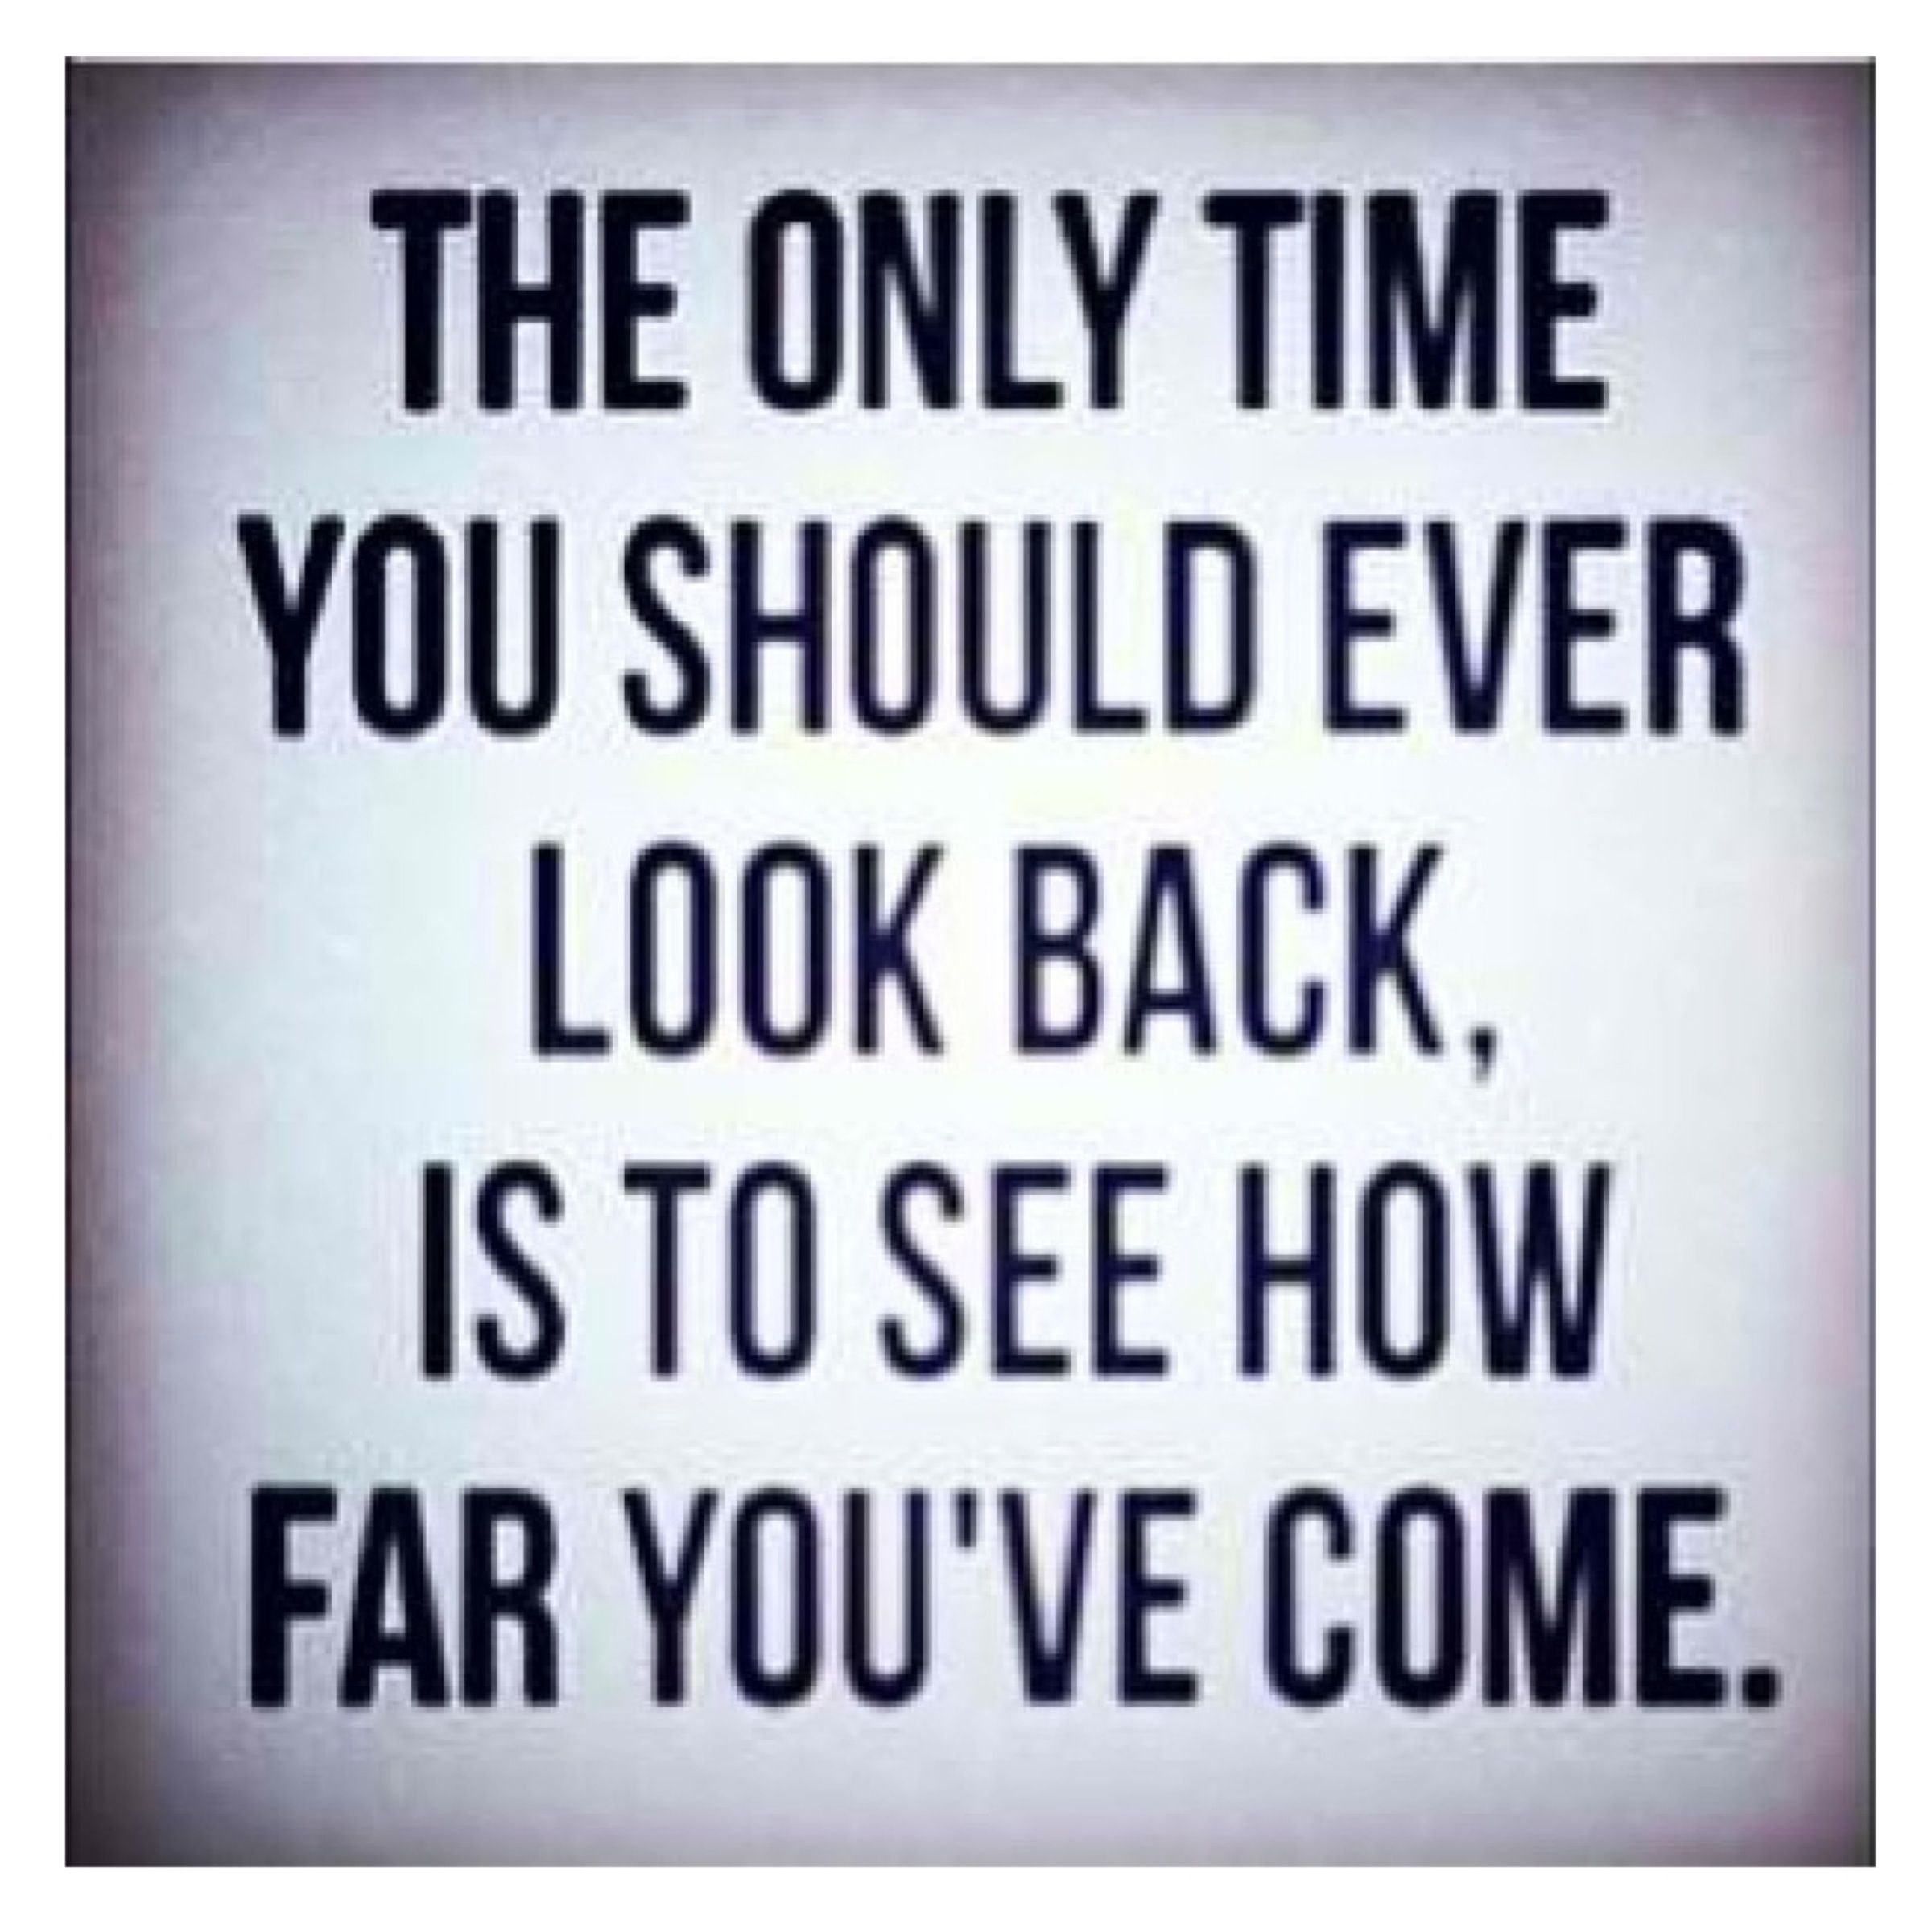 Best Inspirational Quotes About Life The Only Time You Should Ever Look Back Is To See How Far You've